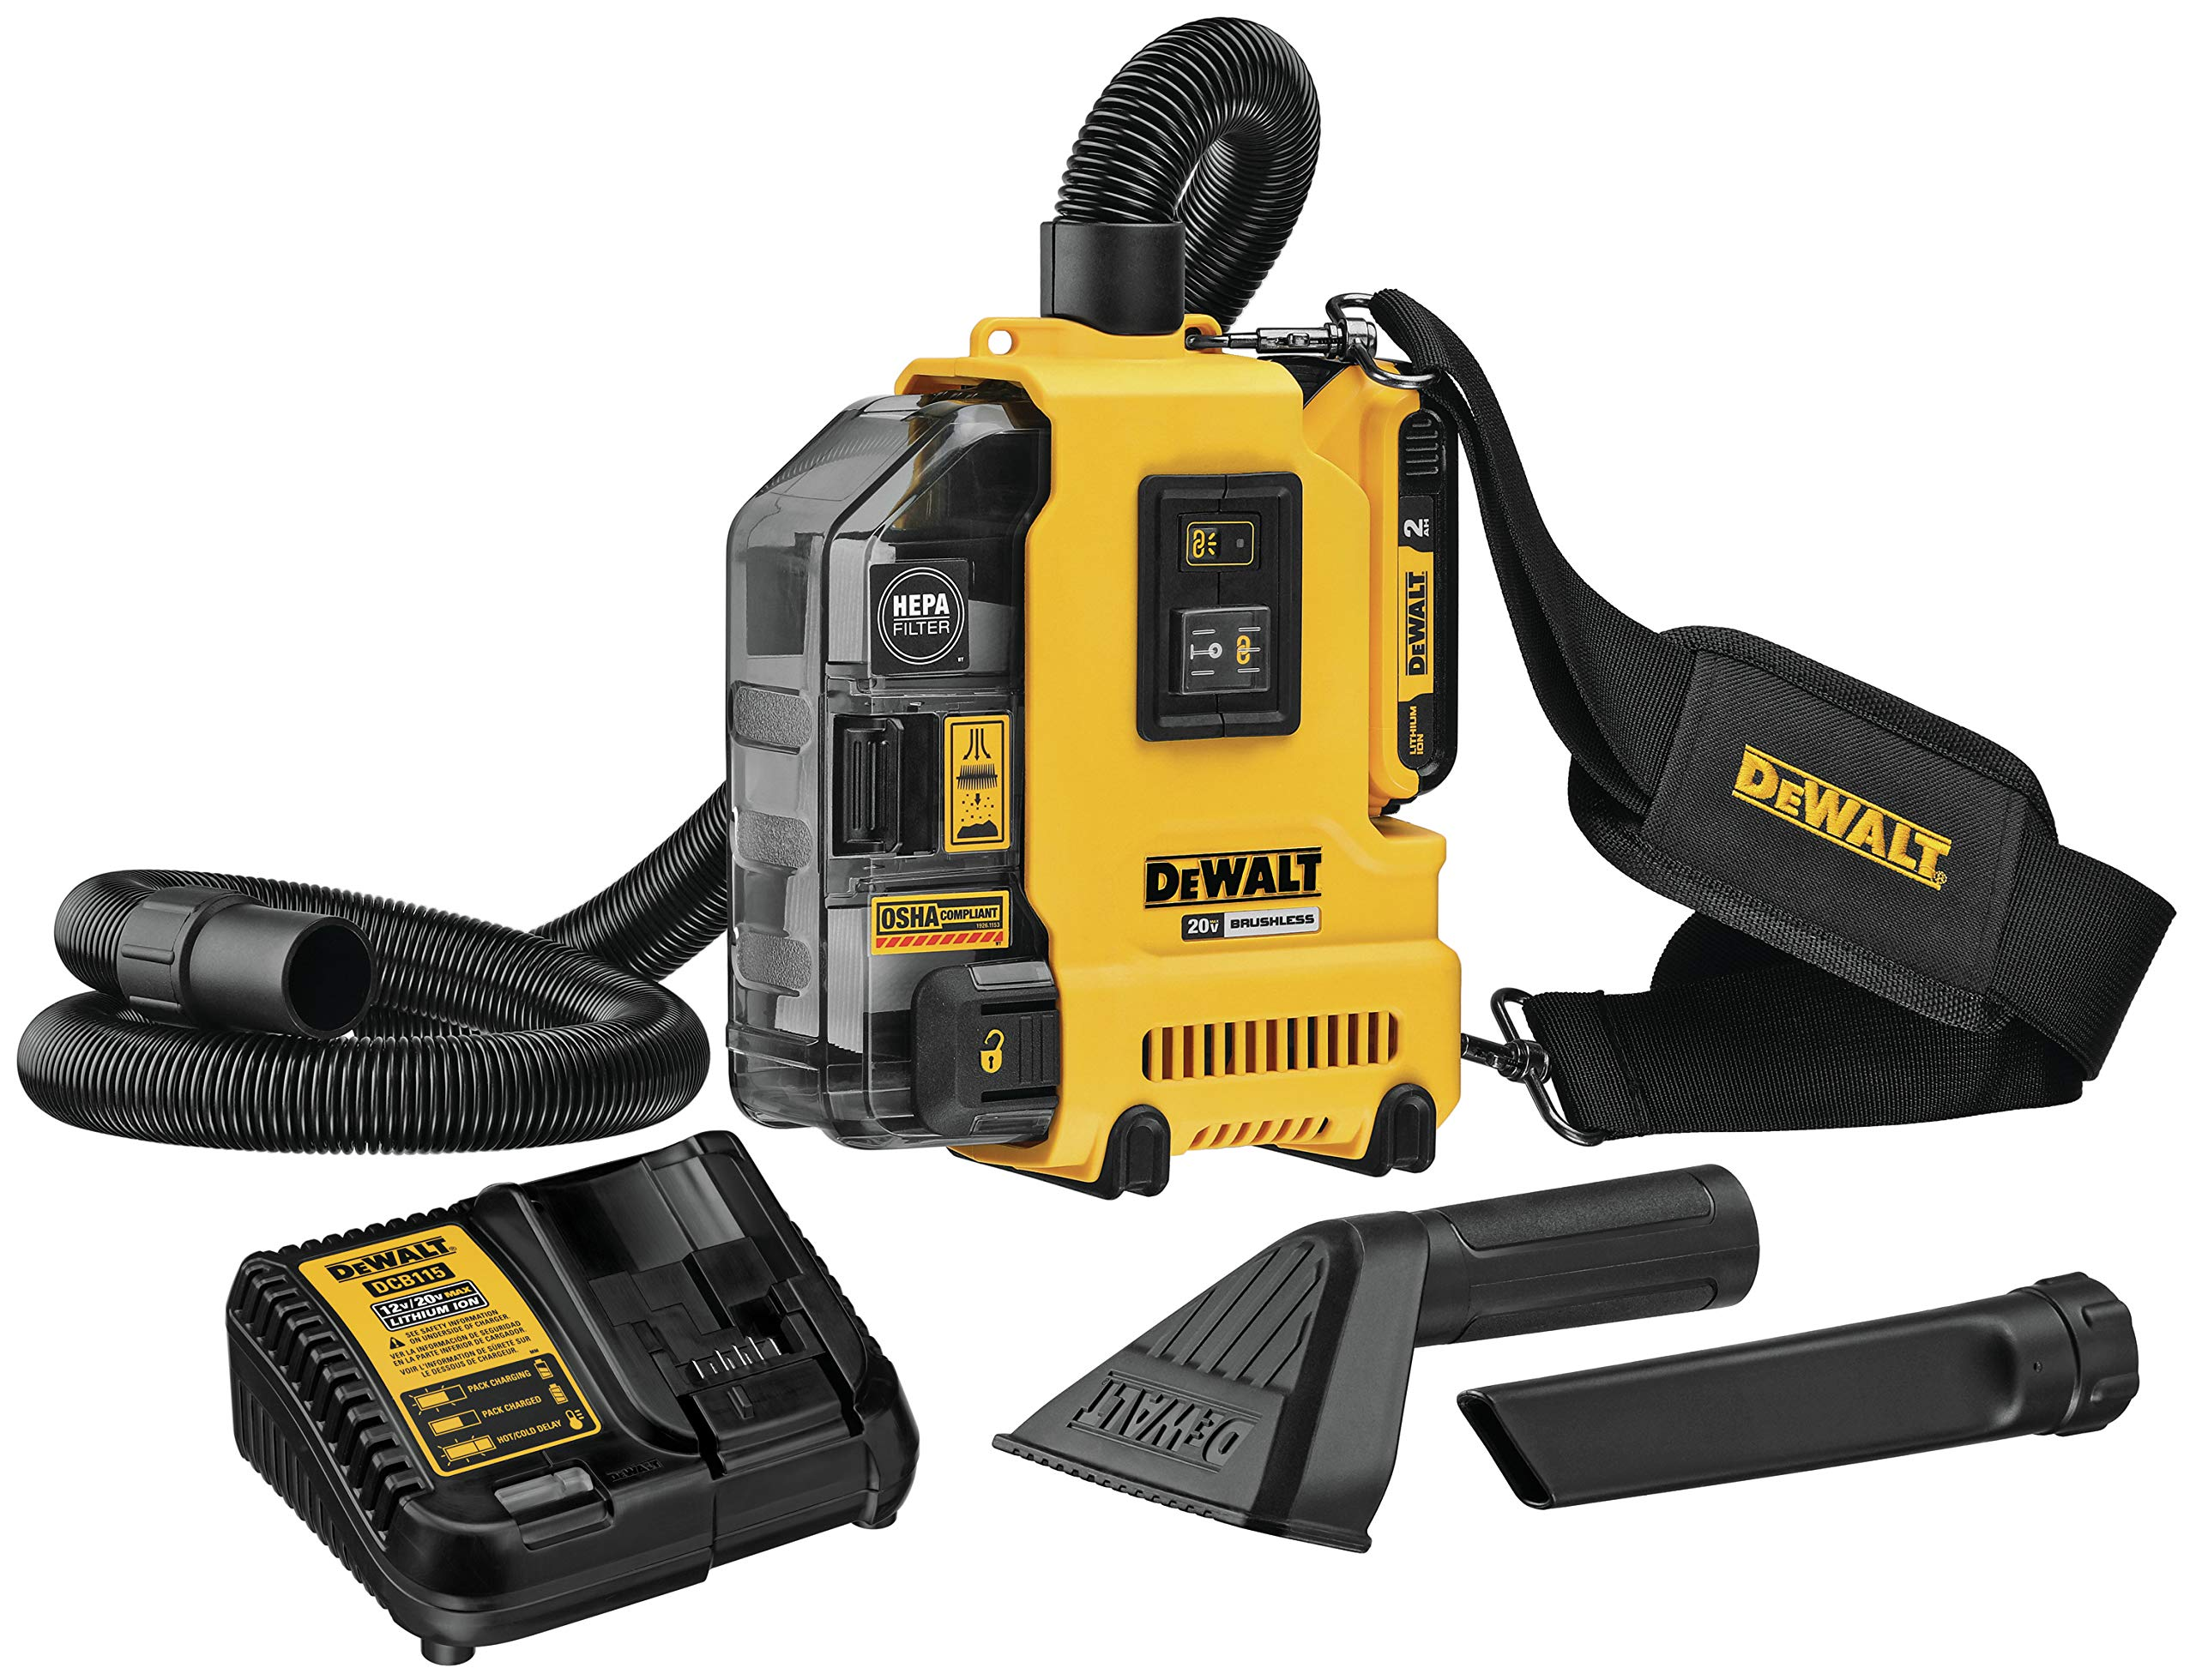 DEWALT DWH161D1 20V MAX Brushless Universal Dust Extractor Kit by DEWALT